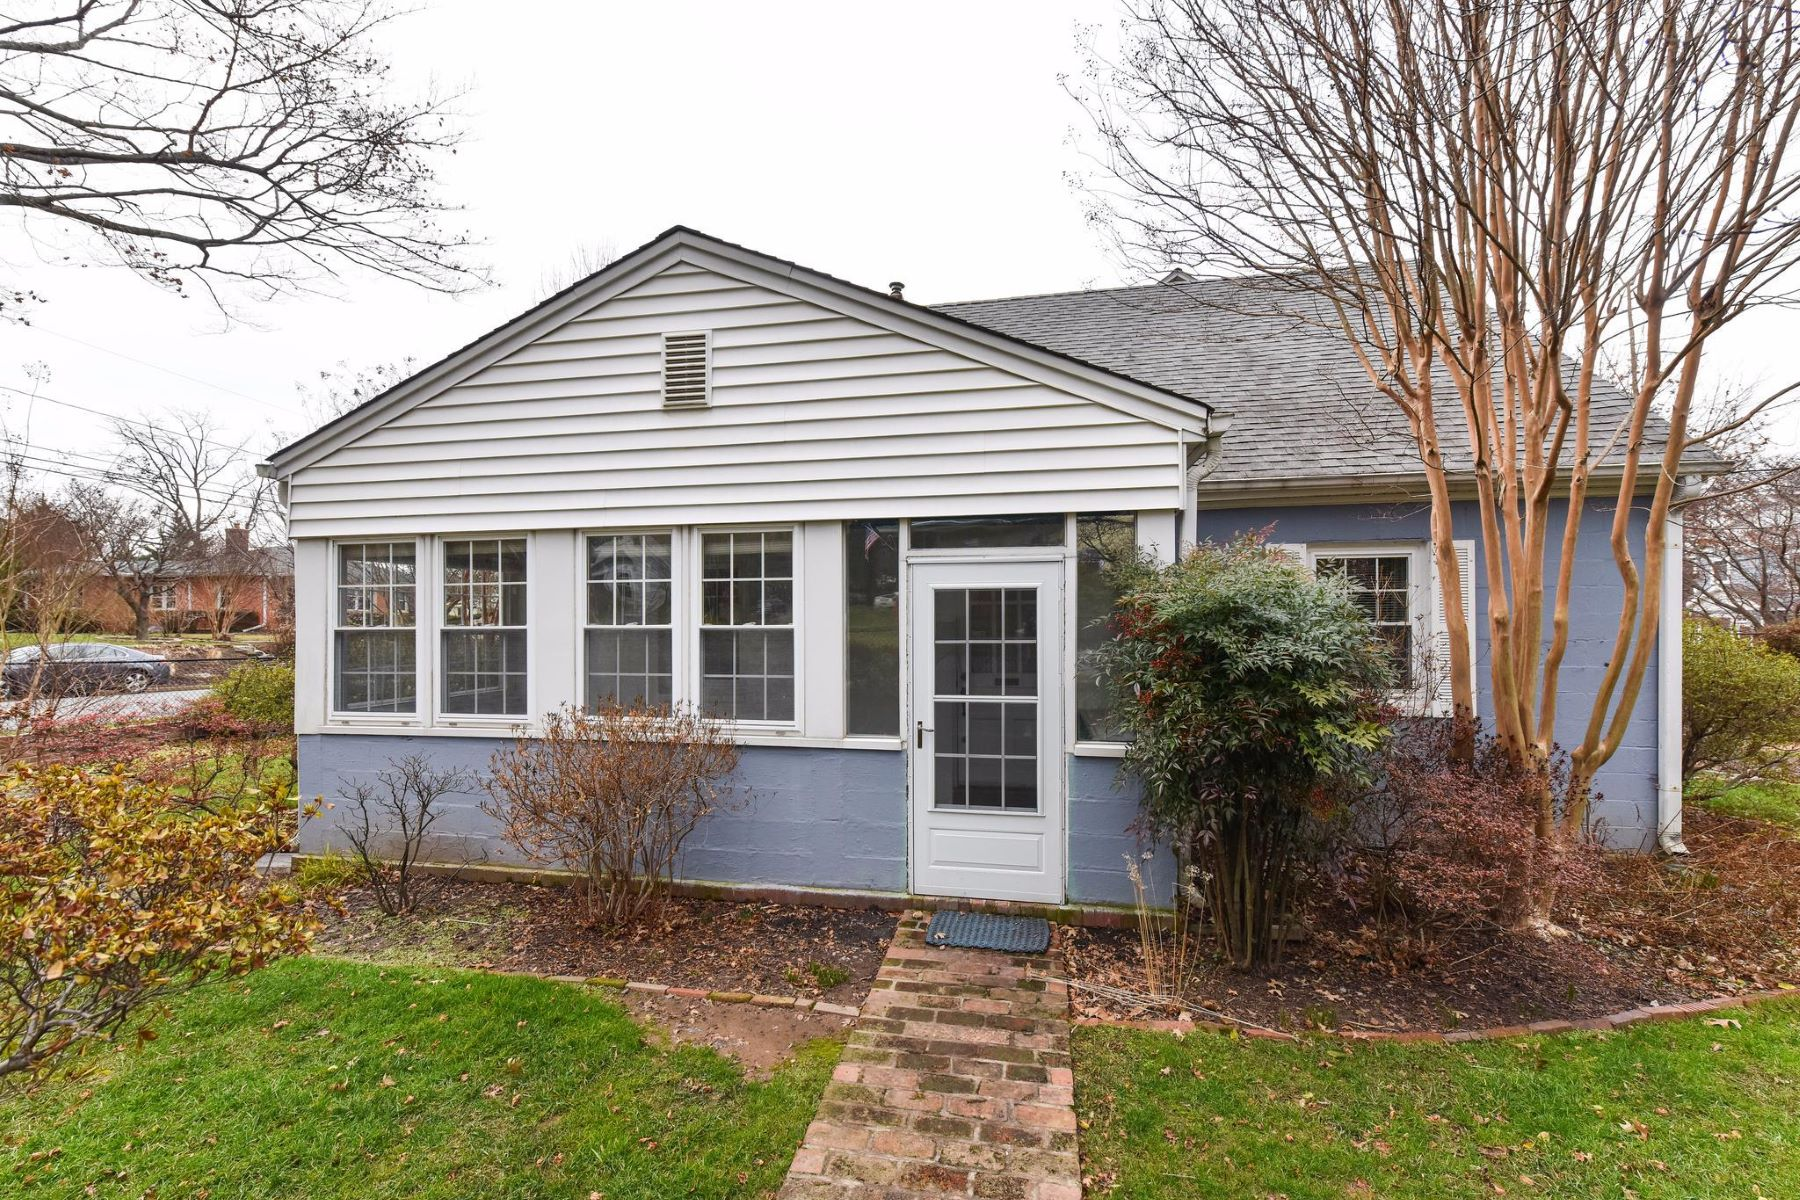 Other Residential for Rent at 1101 N Tuckahoe St 1101 N Tuckahoe St Falls Church, Virginia 22046 United States